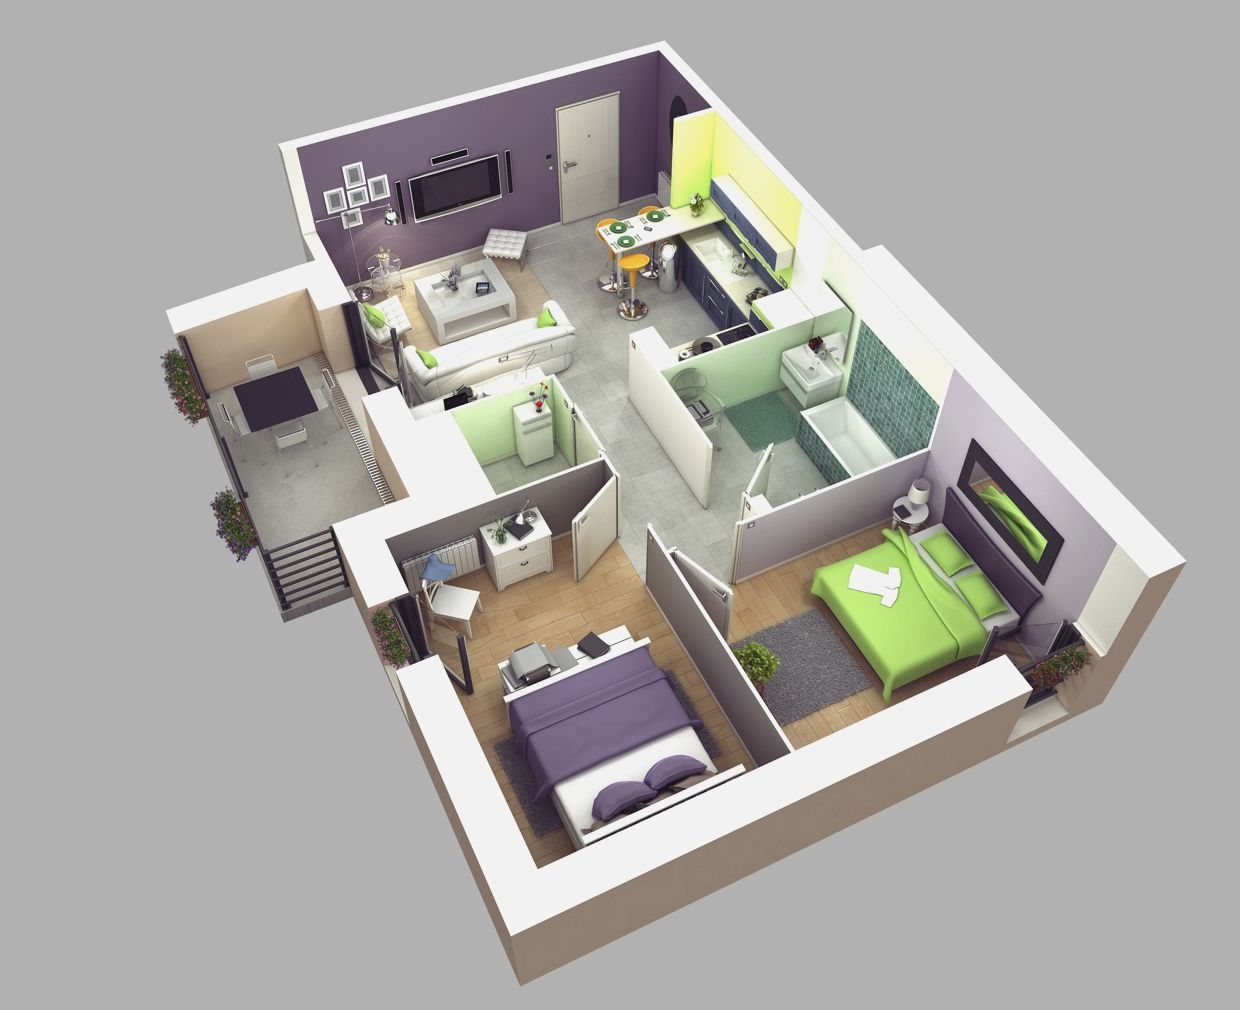 1 bedroom house plans 3d just the two of us apartment Small one room house plans